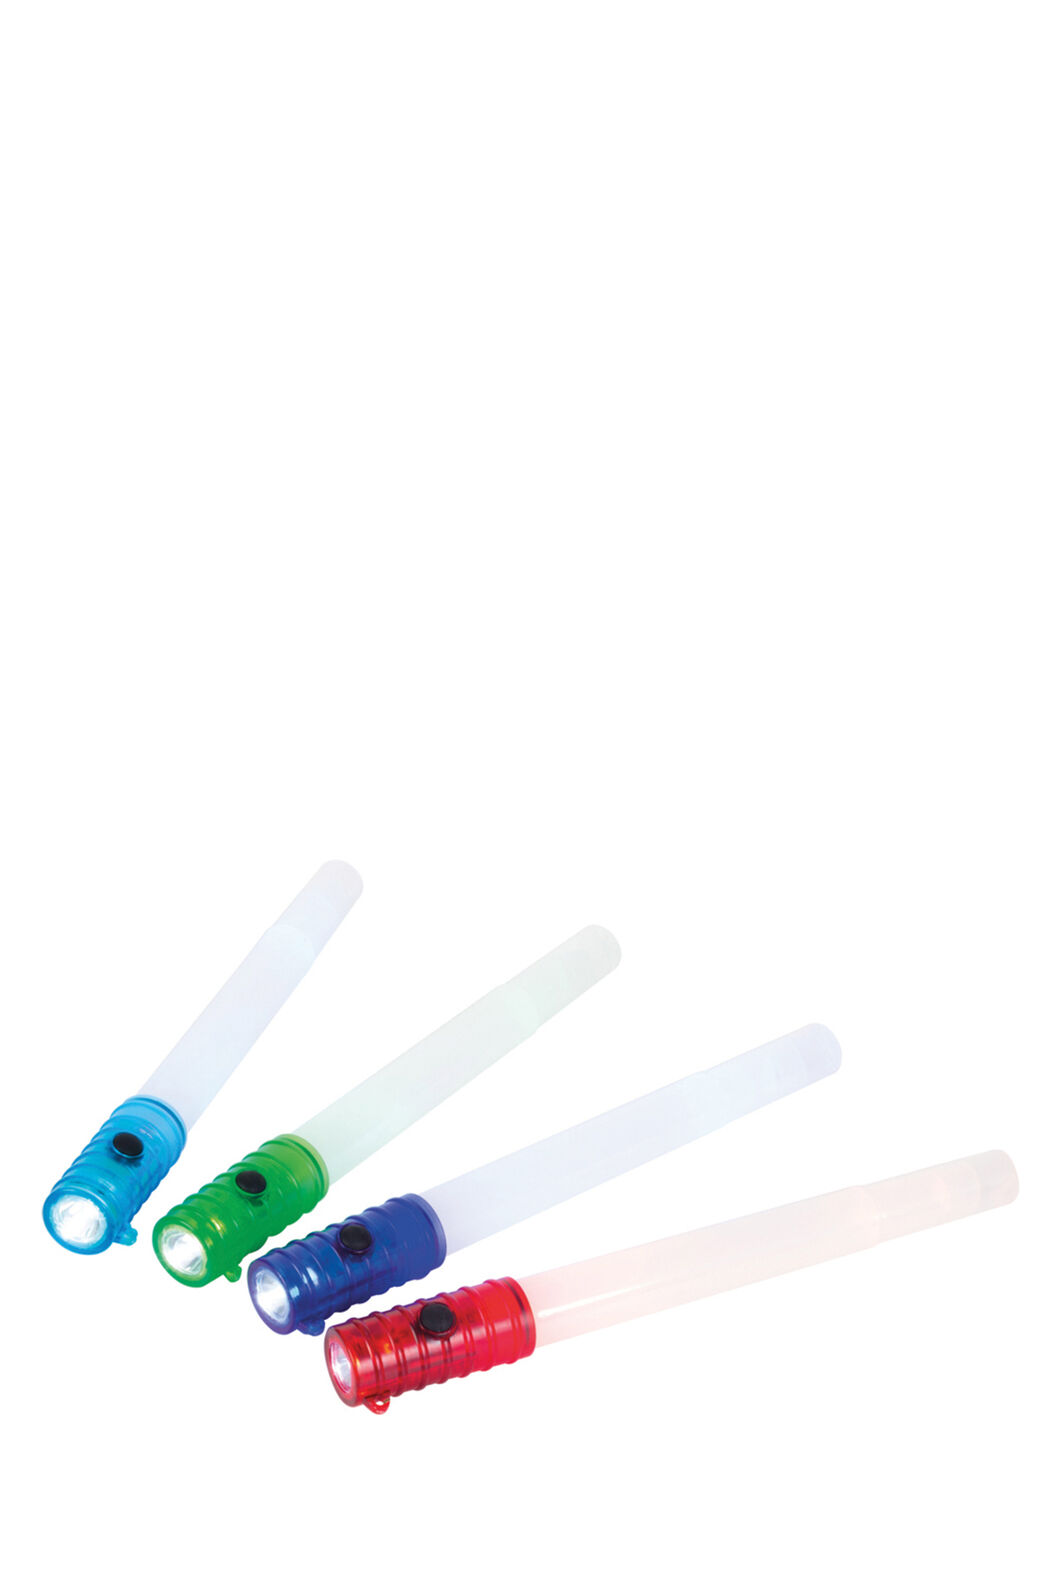 Life Gear Glow Stick Torch, None, hi-res